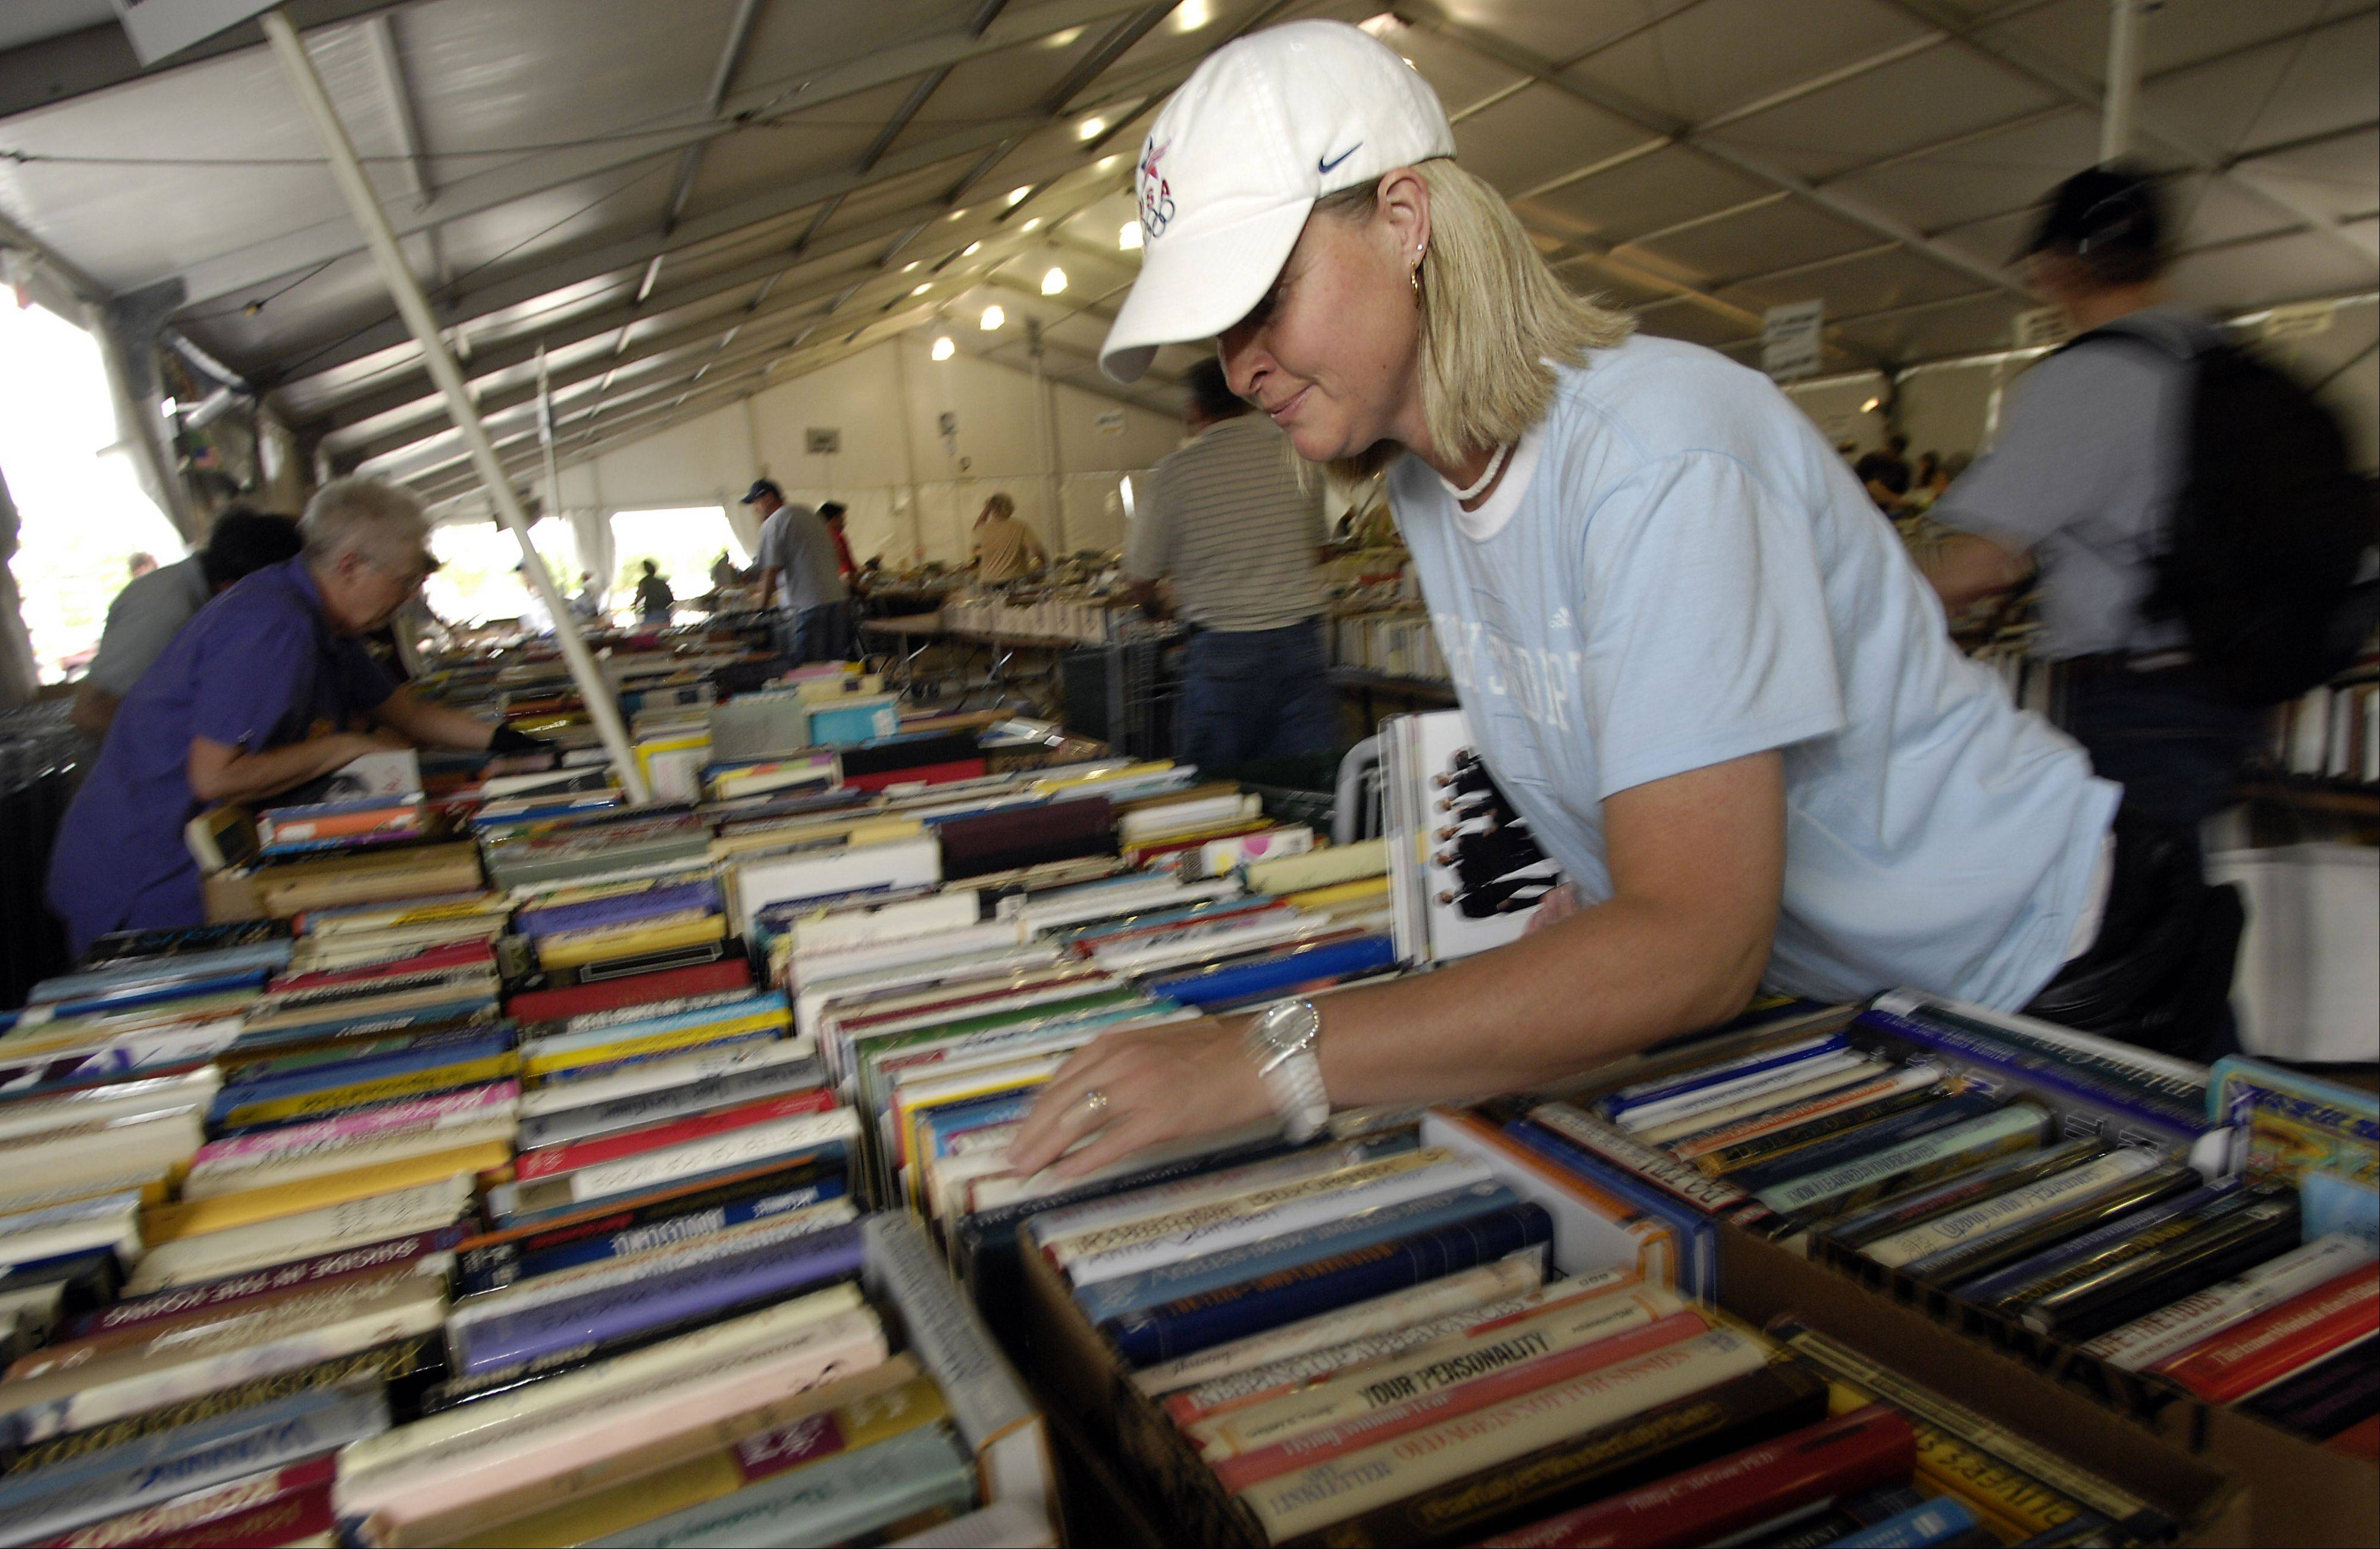 Lin Wilson of Kenosha, Wis., hunts for rare books at the 2008 Little City Book Fair, which is being relocated from Skokie to Harper College in Palatine.